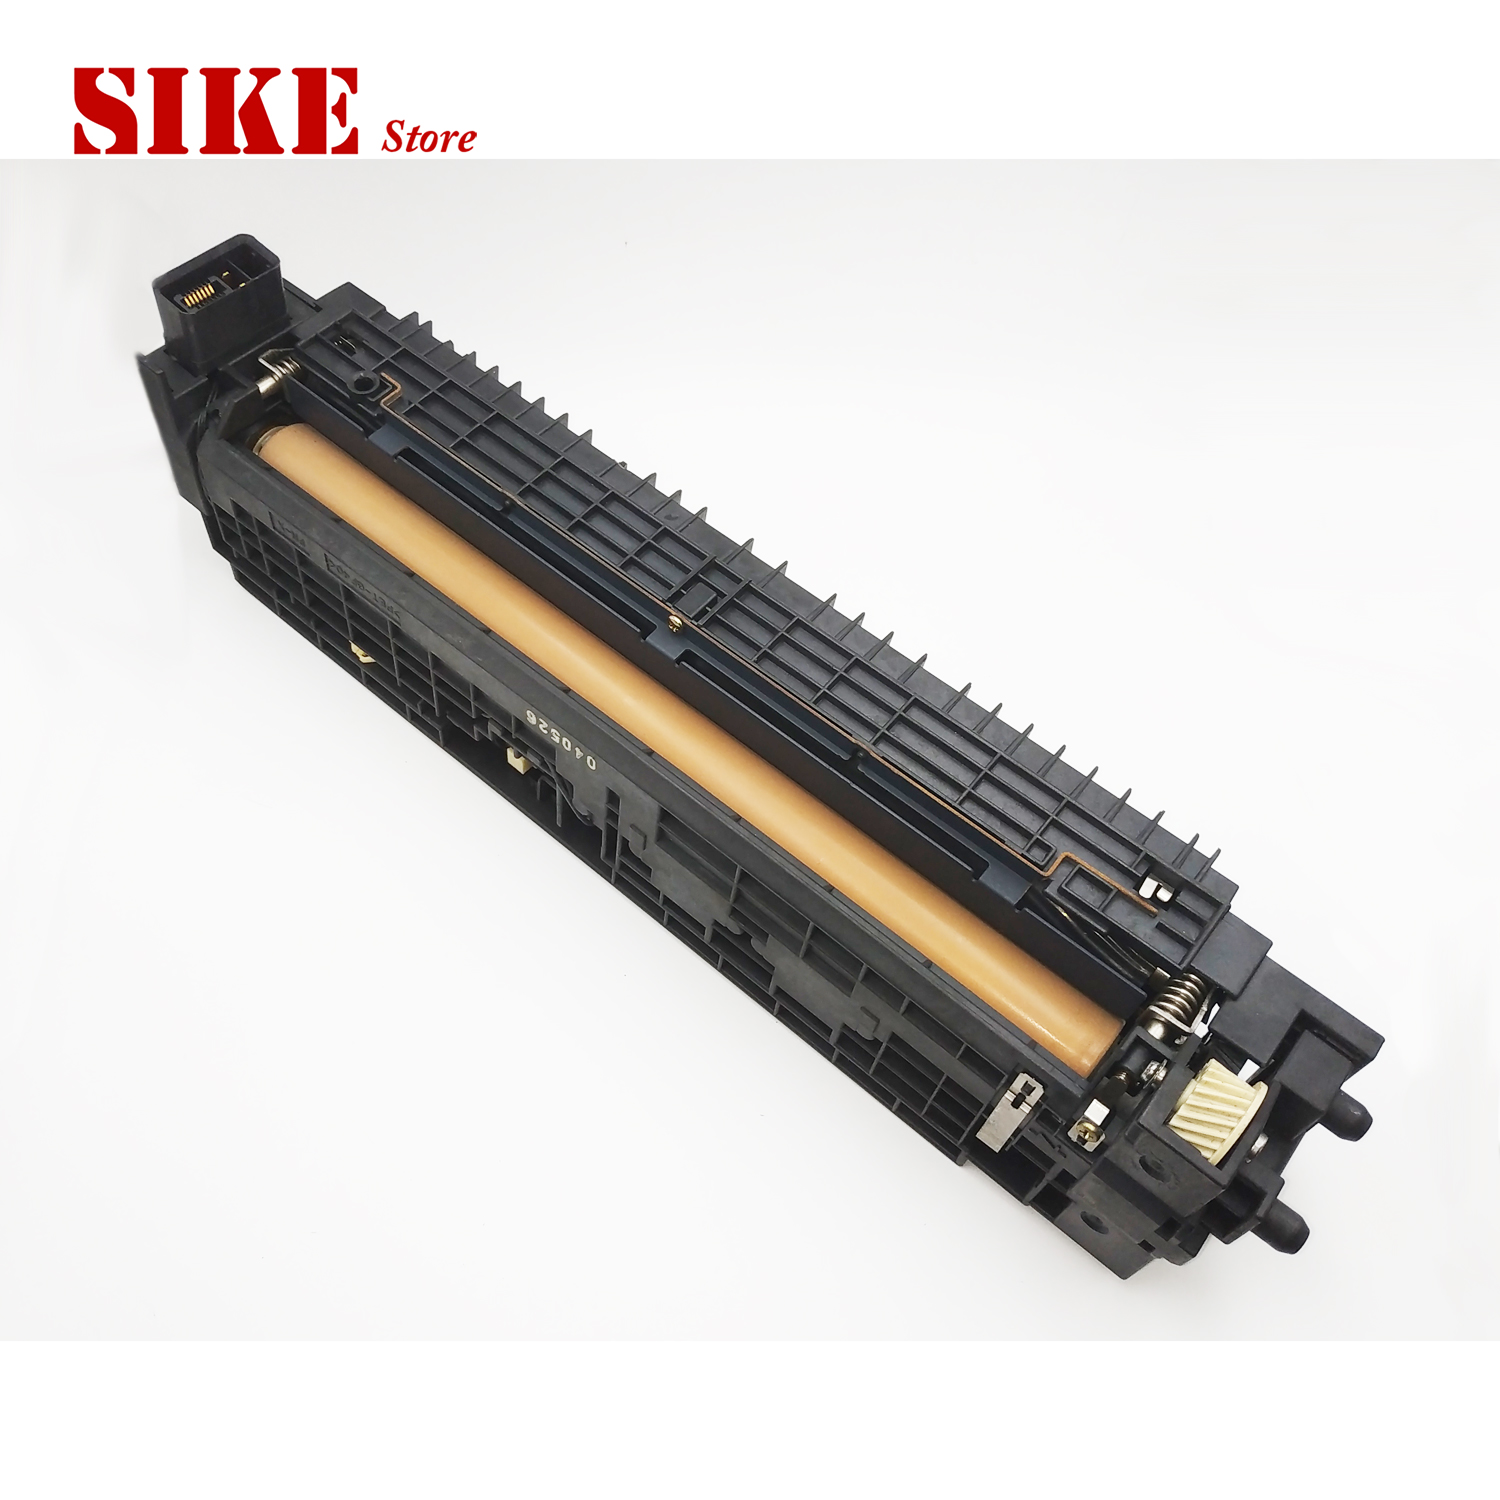 Fuser Unit Assy For Xerox DC 405 285 235 280 230 Fuser Assembly - 5